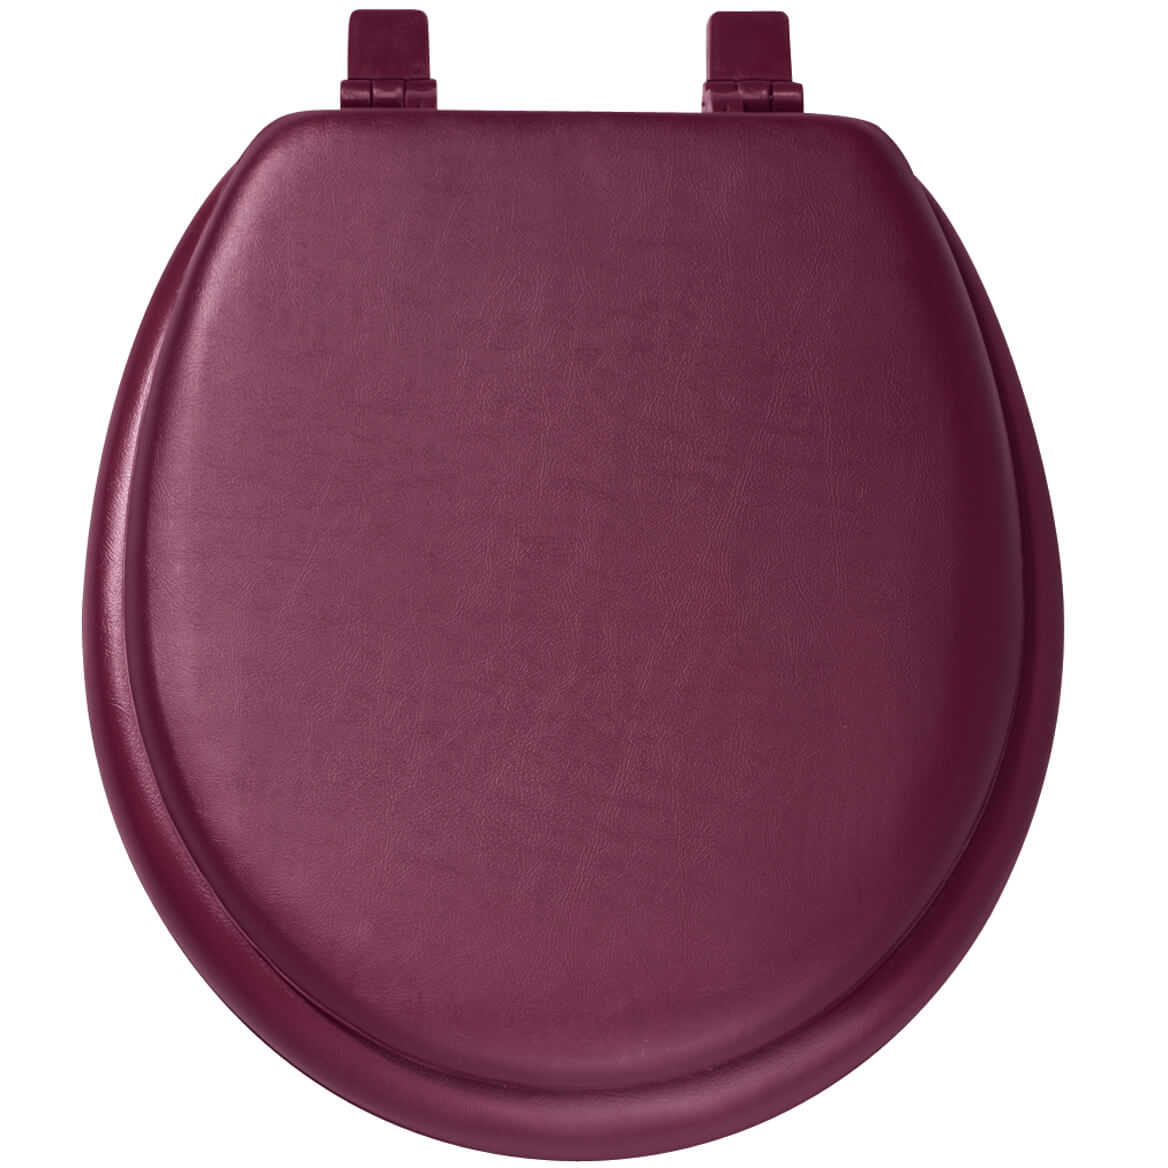 cushioned toilet seat covers. Padded Toilet Seat And Lid  Cushioned Miles Kimball